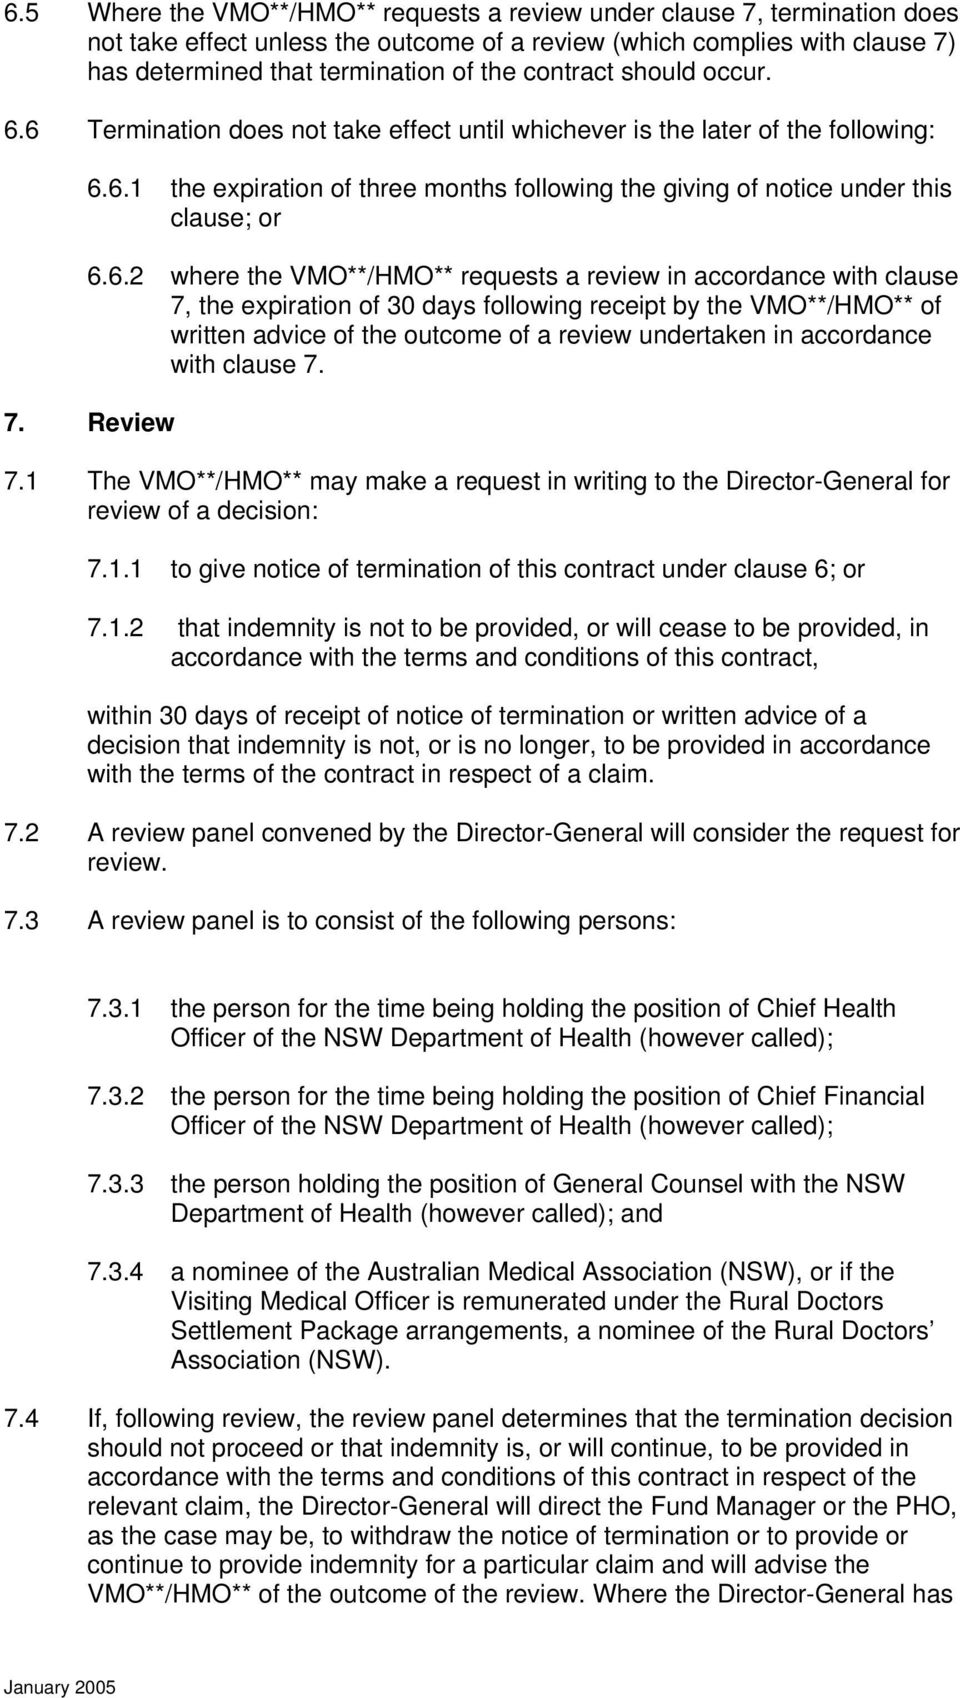 6.2 where the VMO**/HMO** requests a review in accordance with clause 7, the expiration of 30 days following receipt by the VMO**/HMO** of written advice of the outcome of a review undertaken in